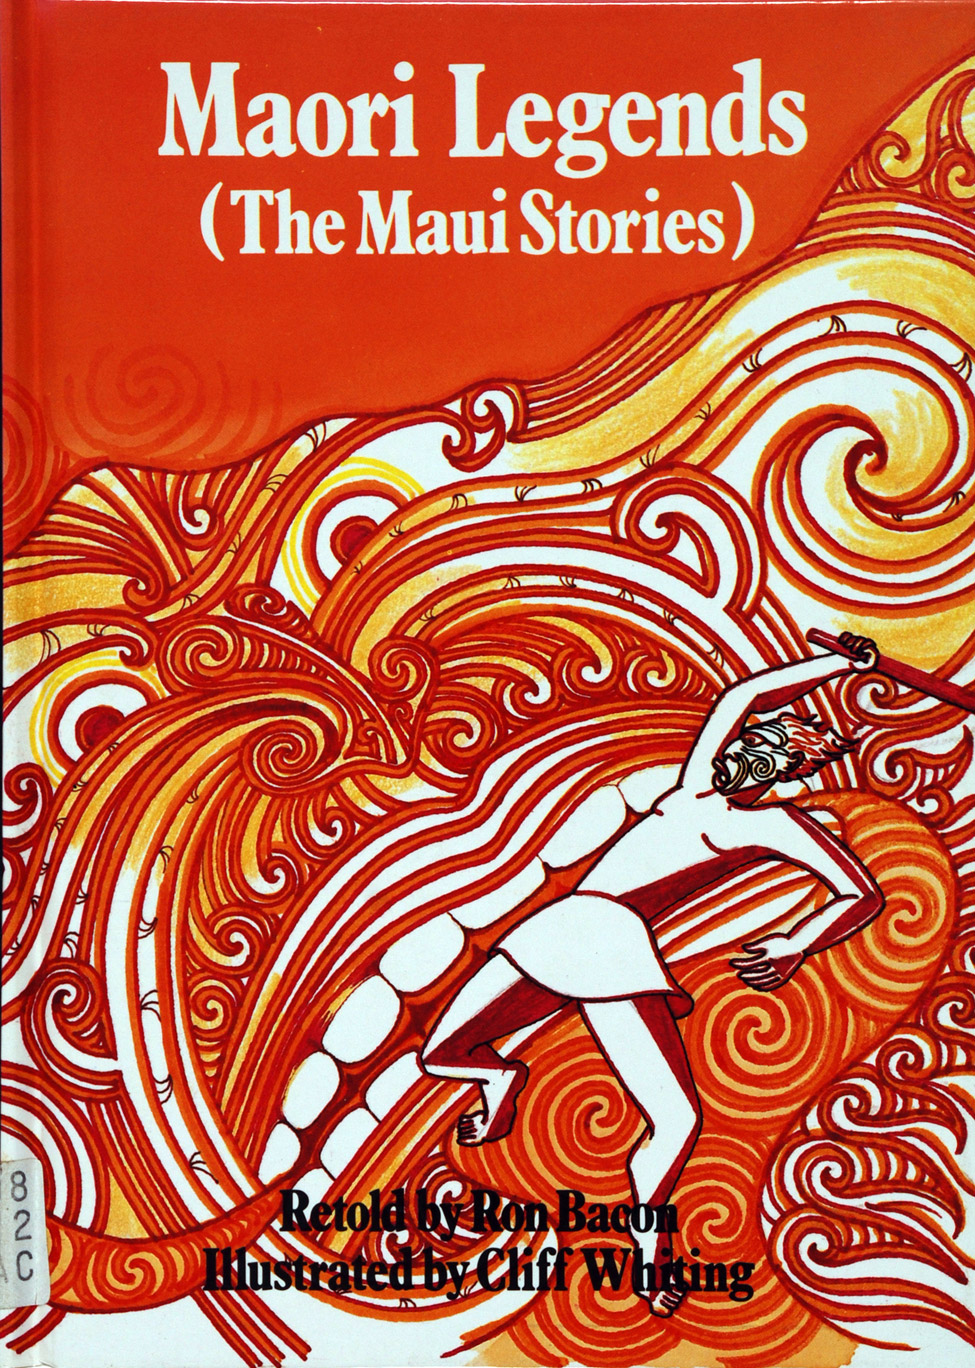 <i>----. Maori Legends (The Maui Stories) Retold by Ron Bacon; Illustrated by Cliff Whiting. </i> Auckland: Shortland Educational Publications, 1984.